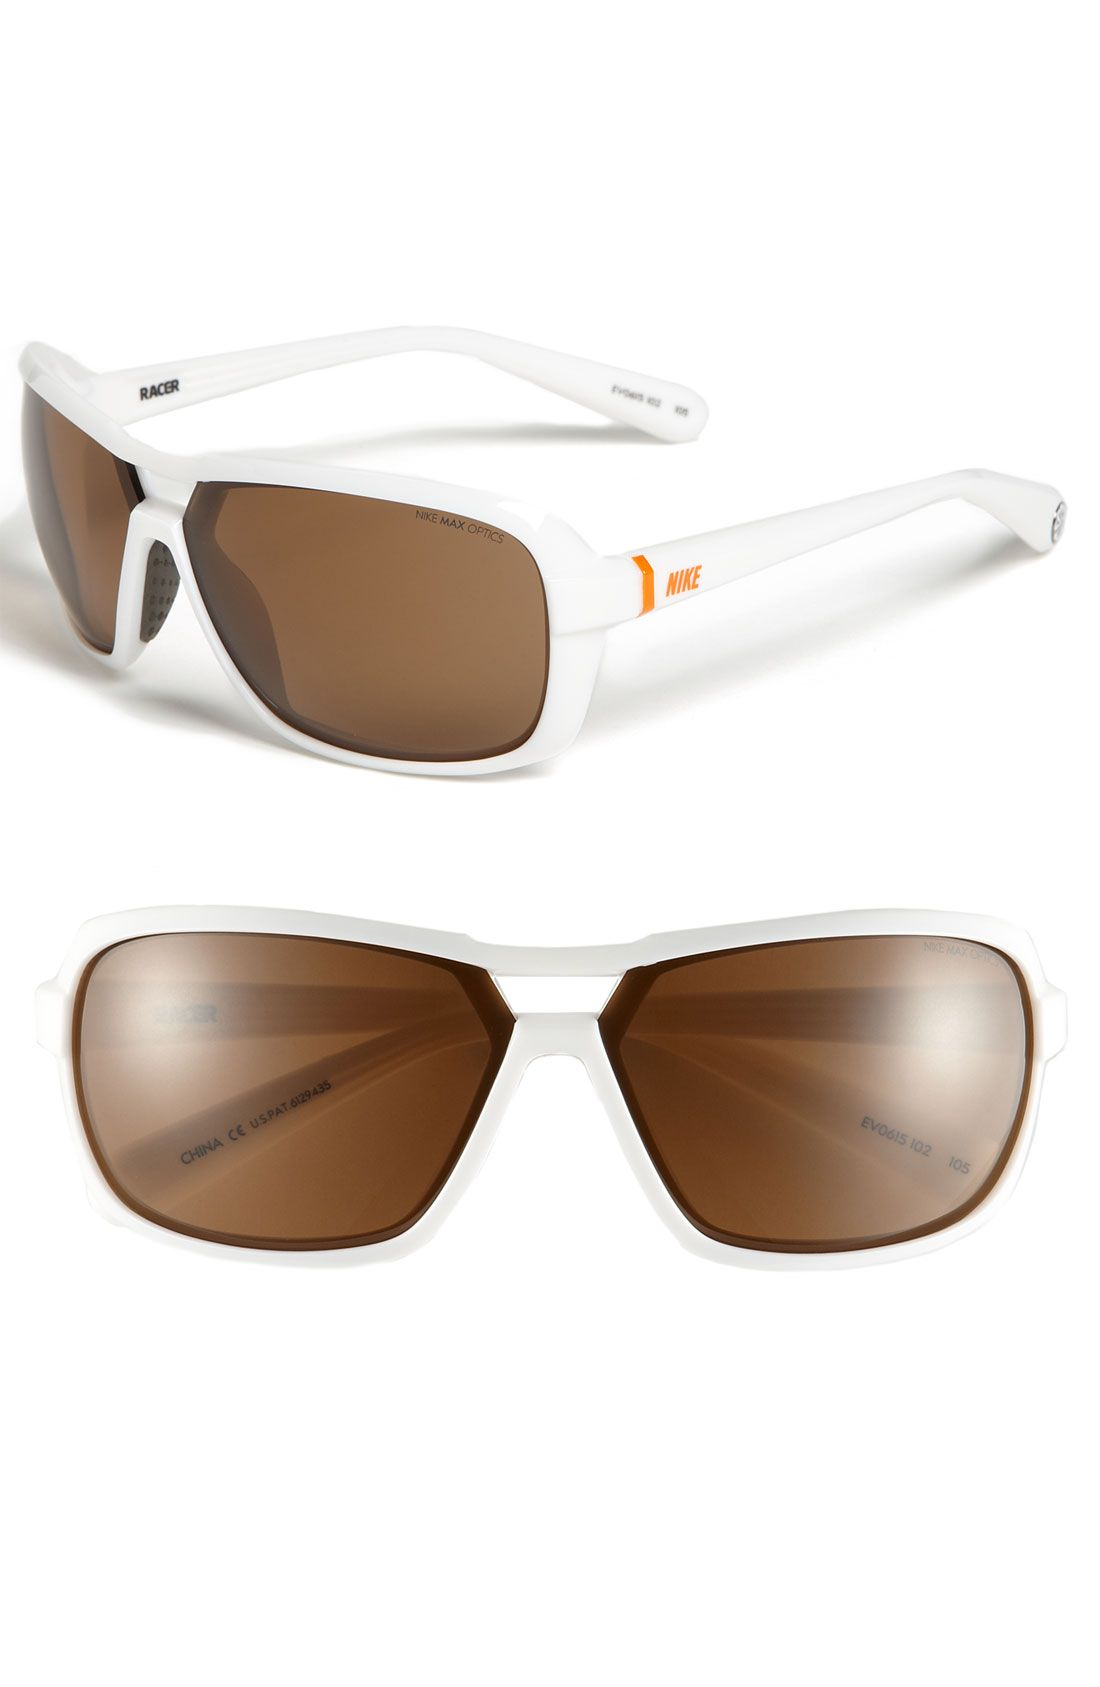 nike sunglasses mens 2016